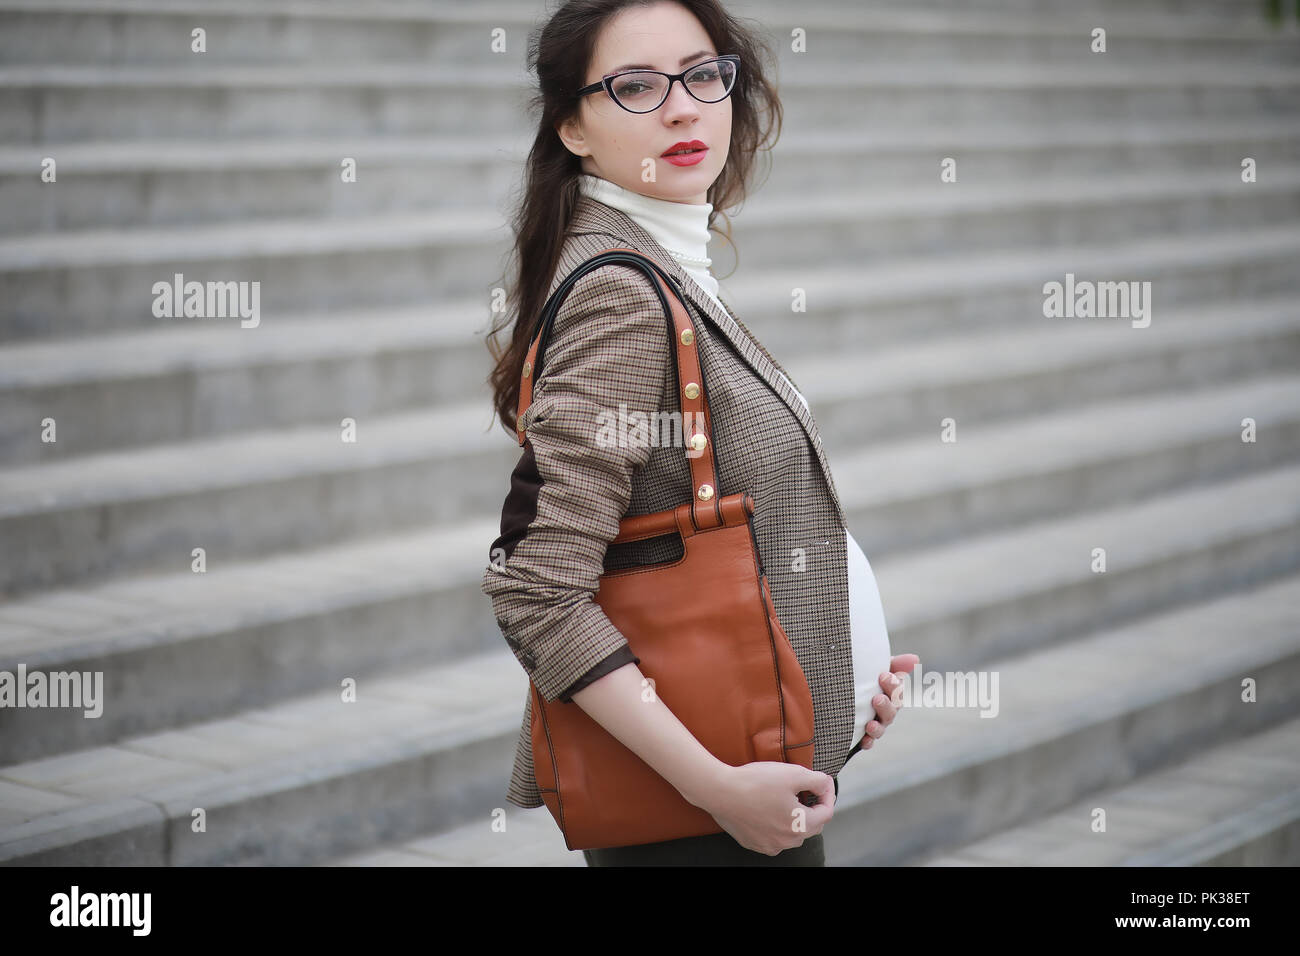 Pregnant woman talking on the phone in the street - Stock Image